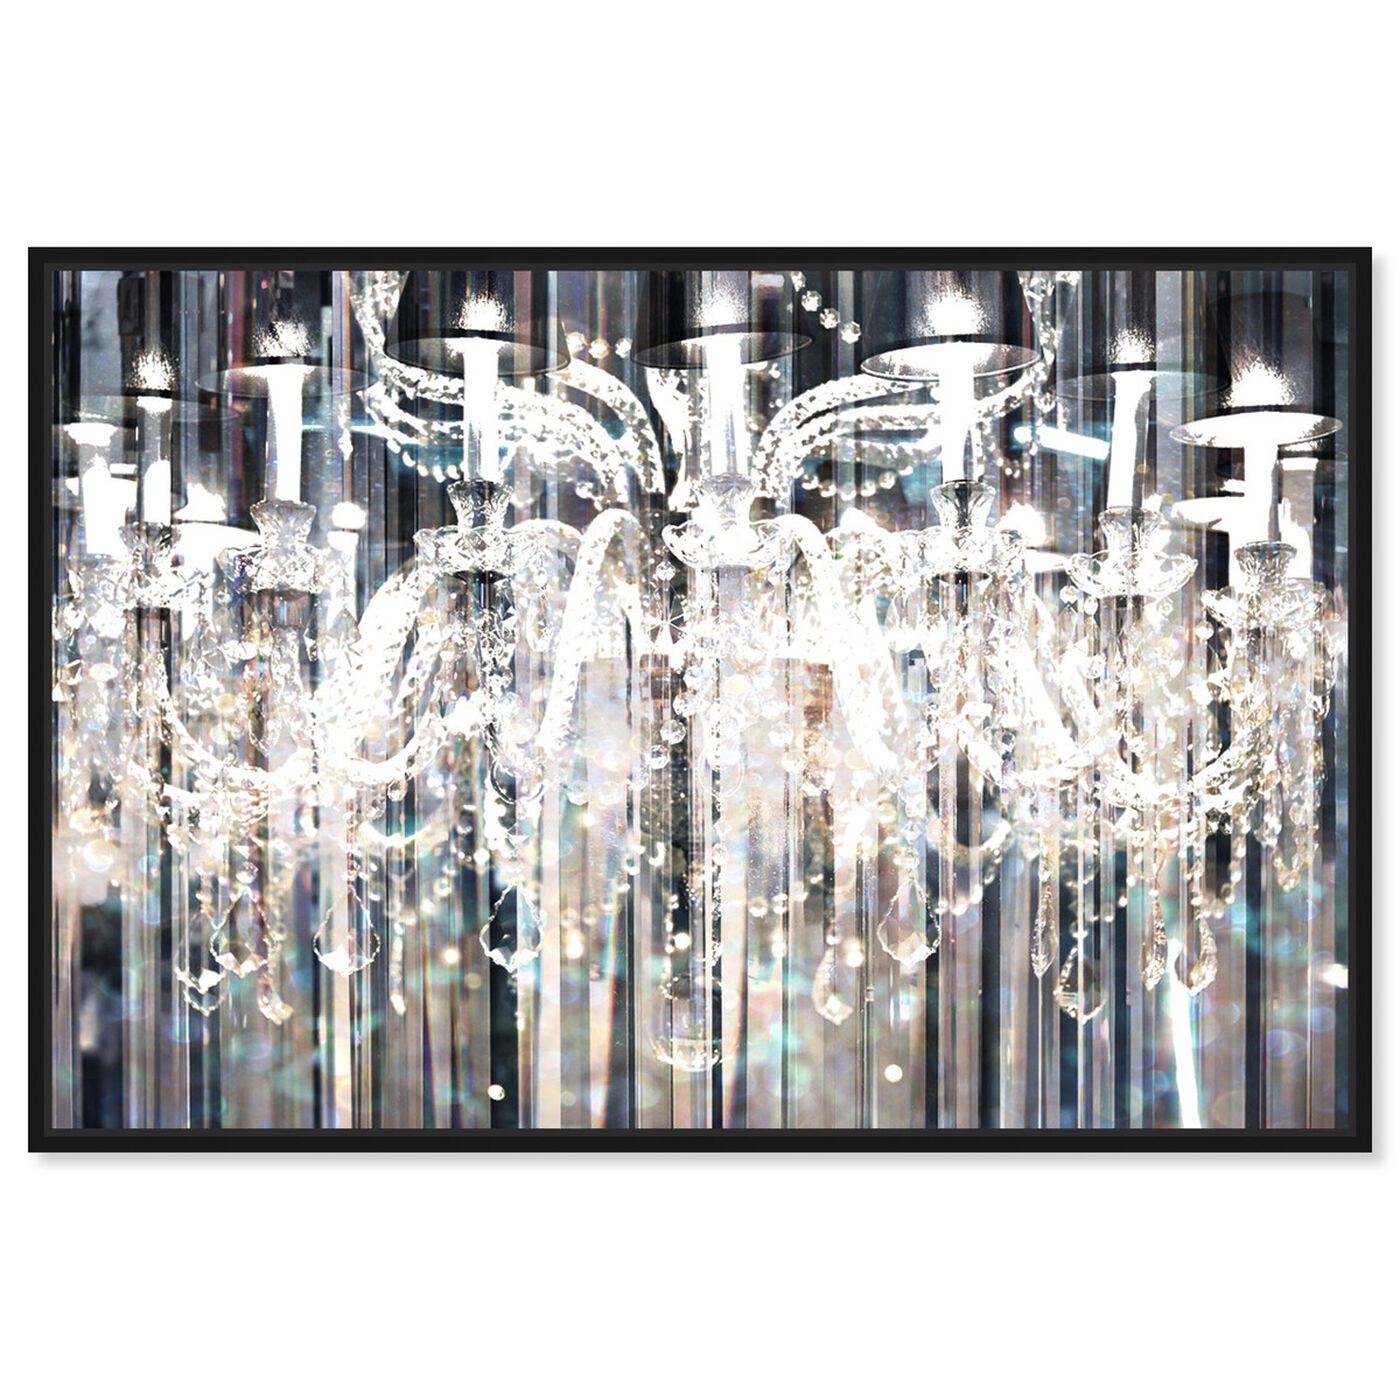 Front view of Diamond Shower featuring fashion and glam and chandeliers art.